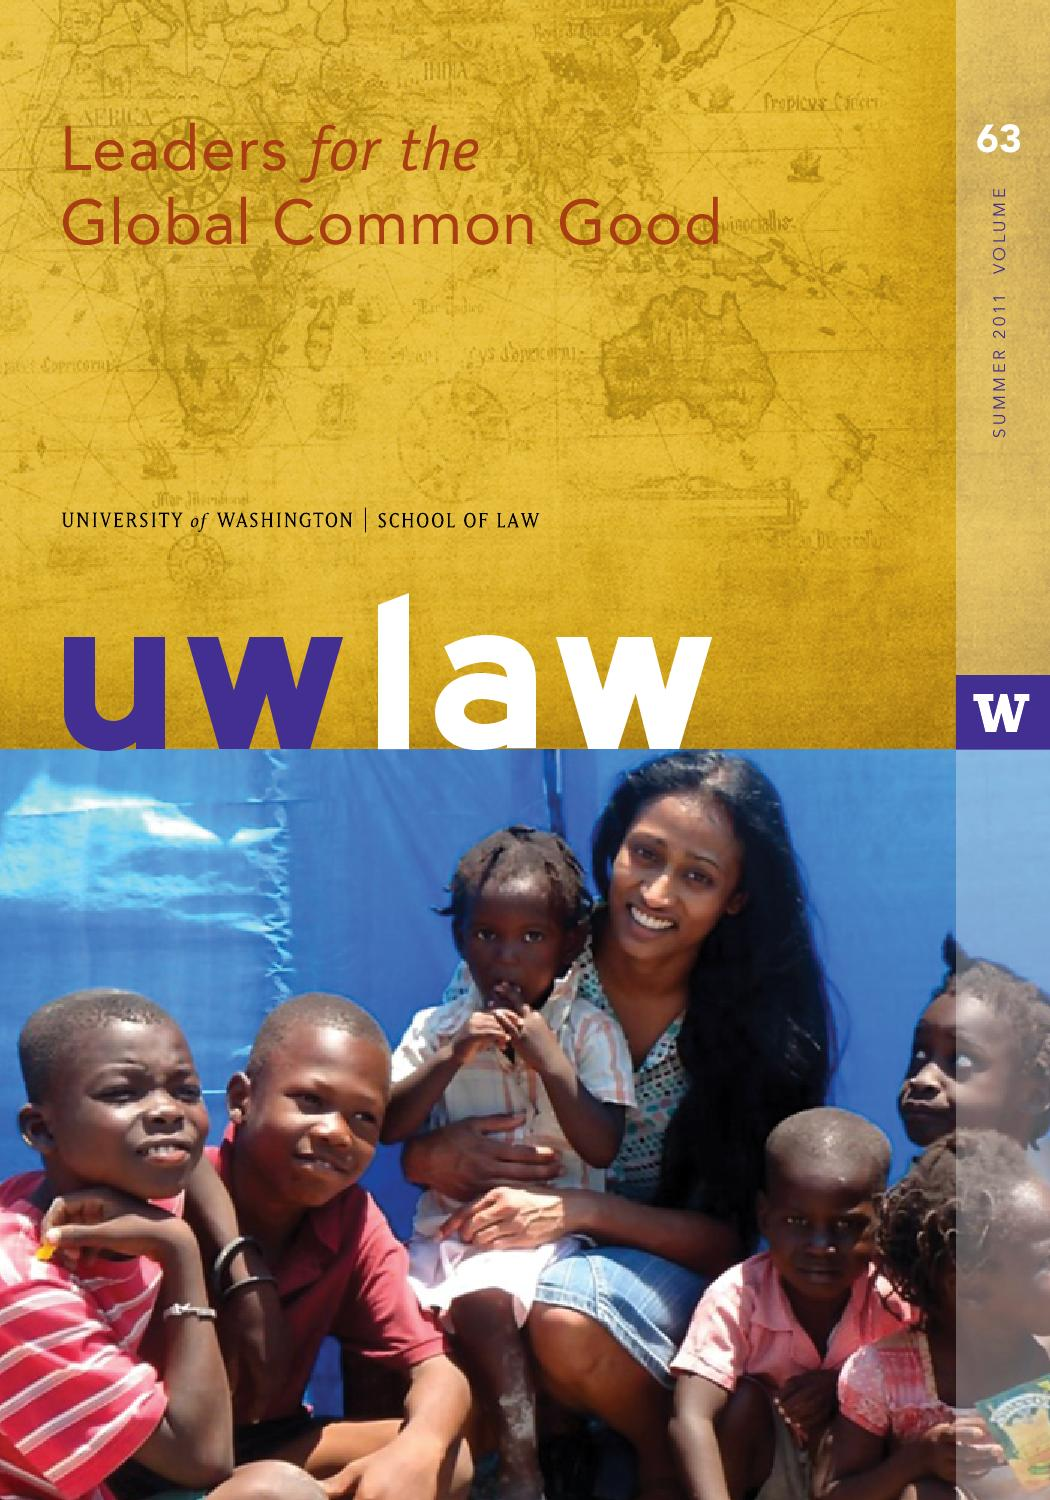 UWLAW Alumni Magazine - Summer 2011 by UW School of Law - issuu